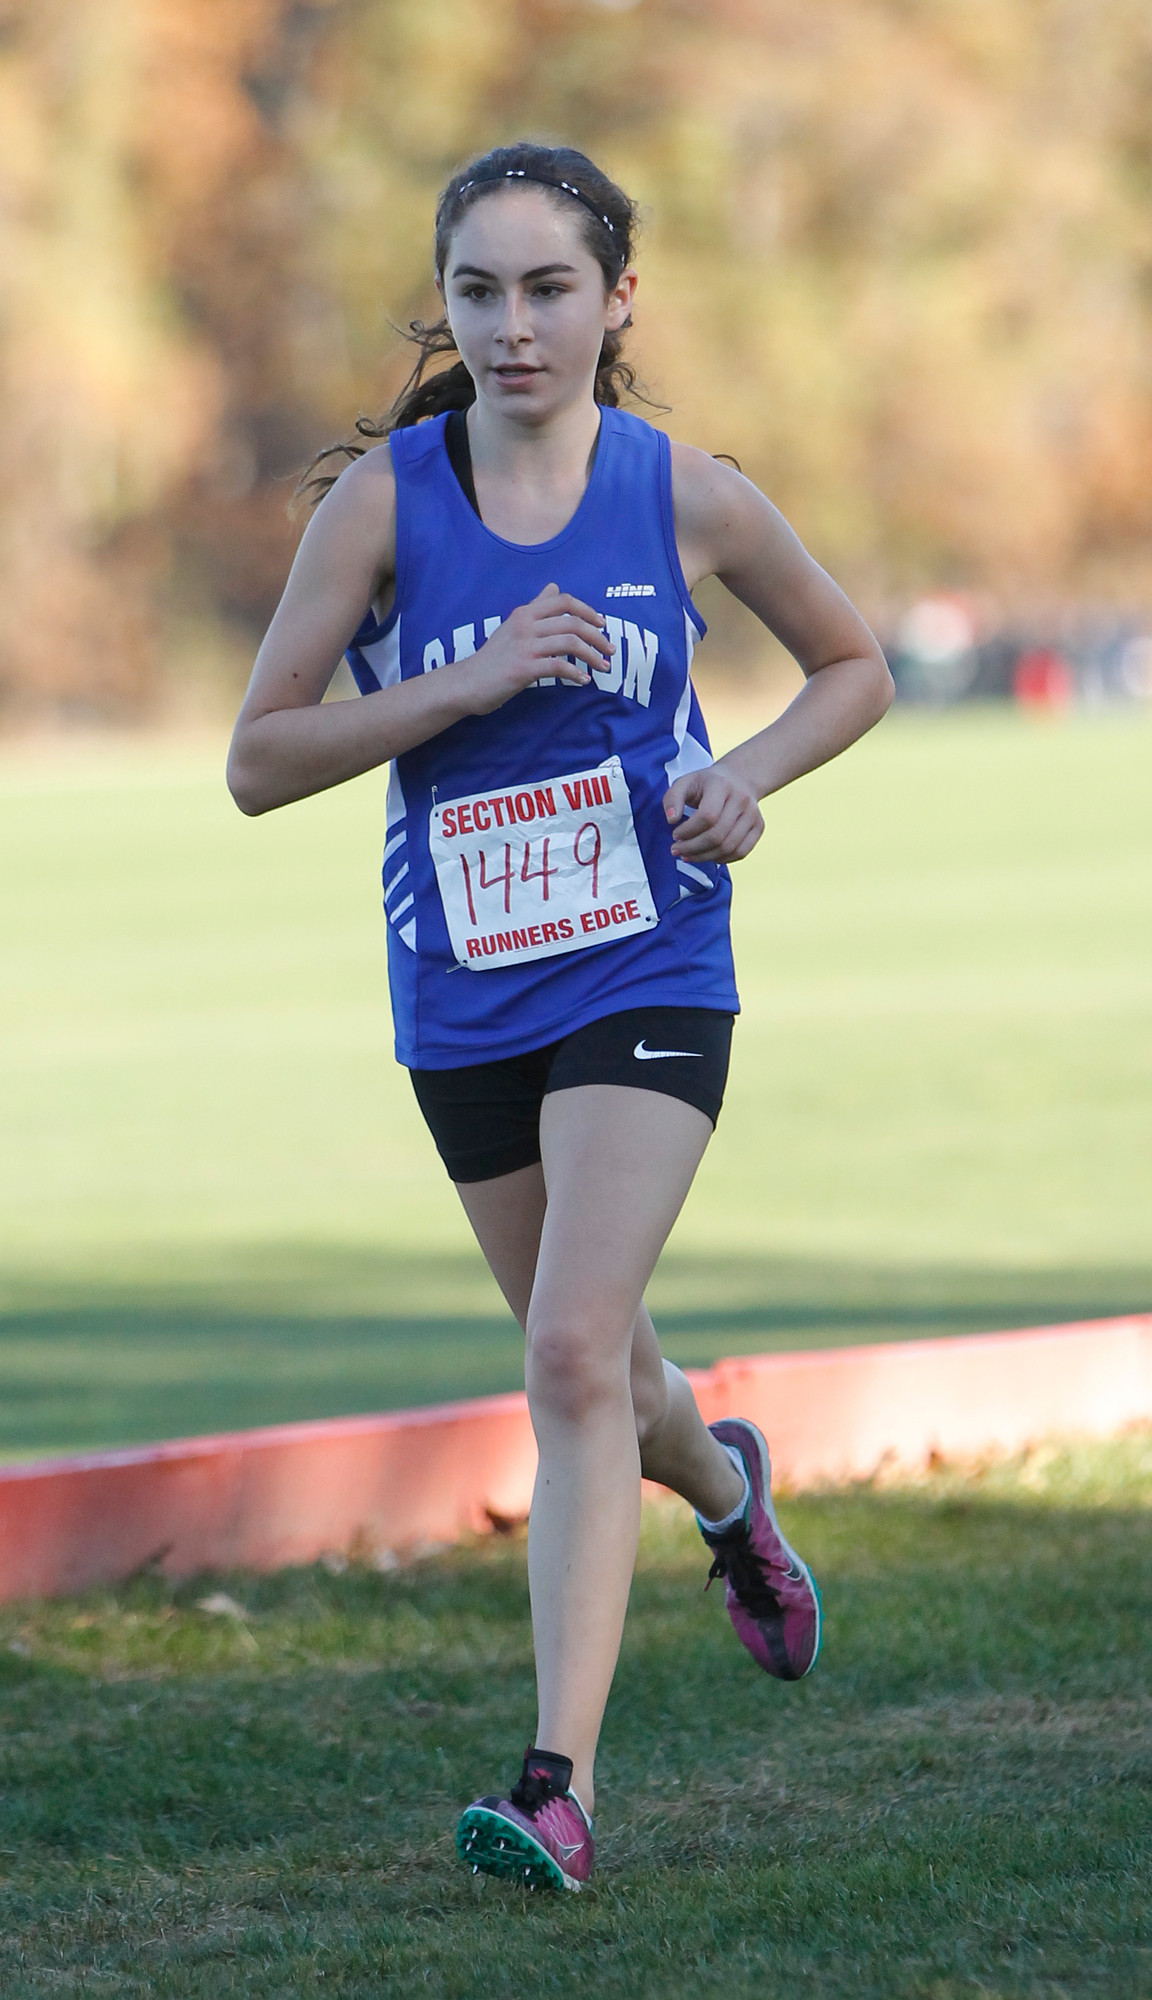 Emma Joseph finished ninth in the Class I county cross-country championship with a time of 20:33. She also came in eighth in Class A and 23rd overall in the state qualifying race with a 20:27.2 5K.